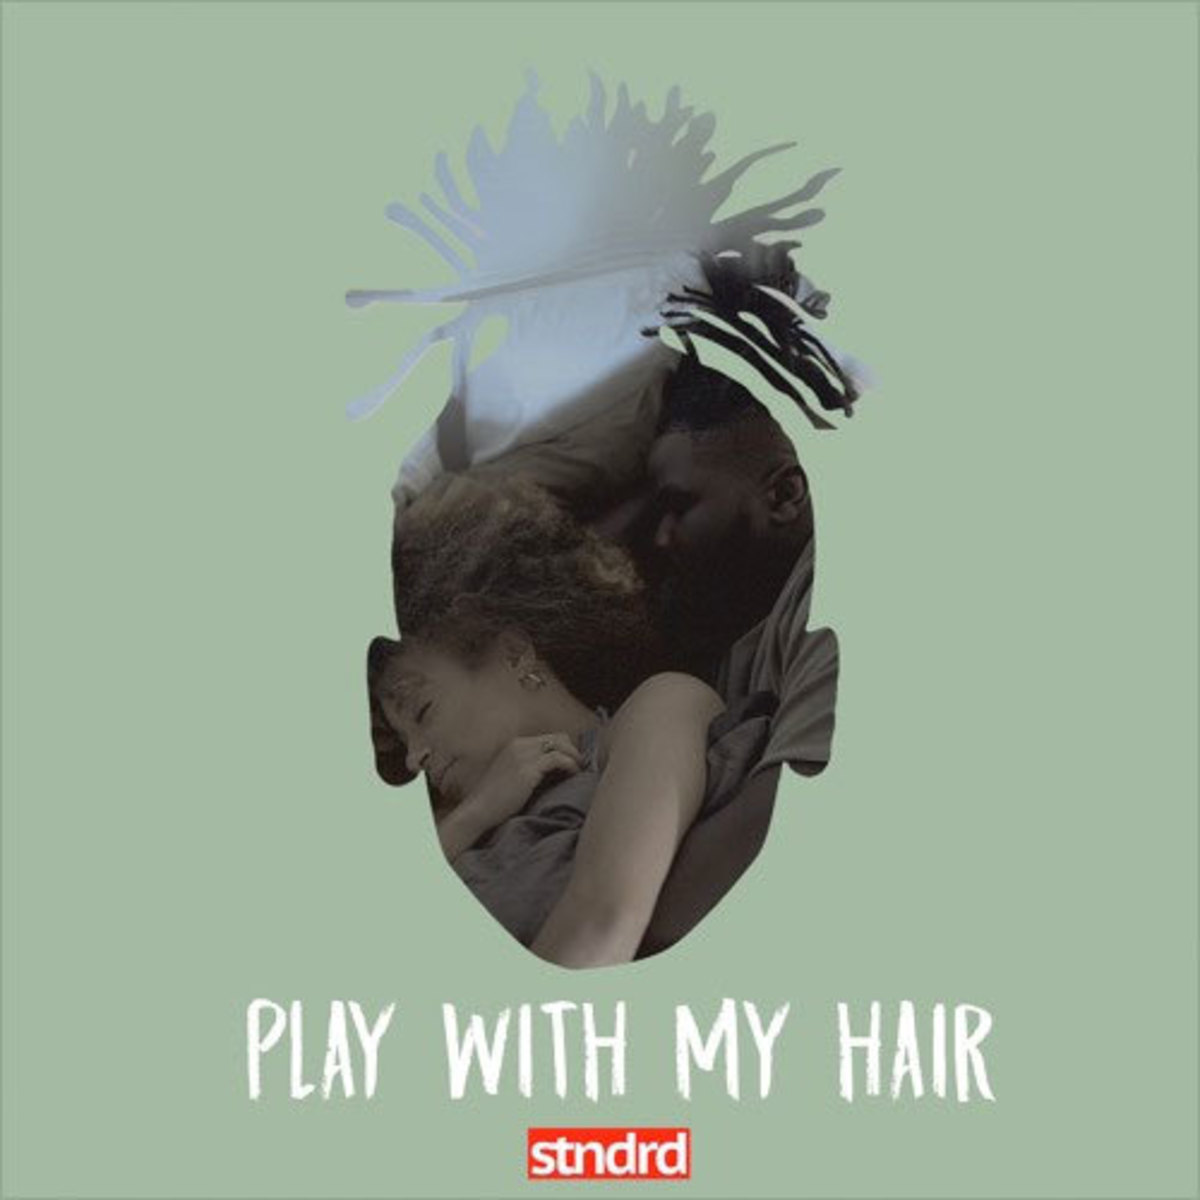 kelechi-play-with-my-hair.jpg